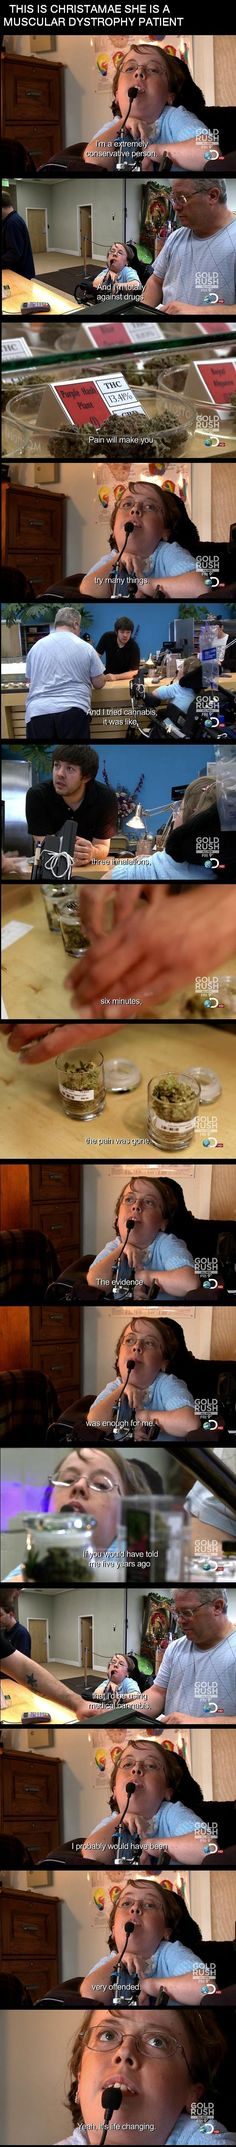 This is very motivational. Medical Cannabis.